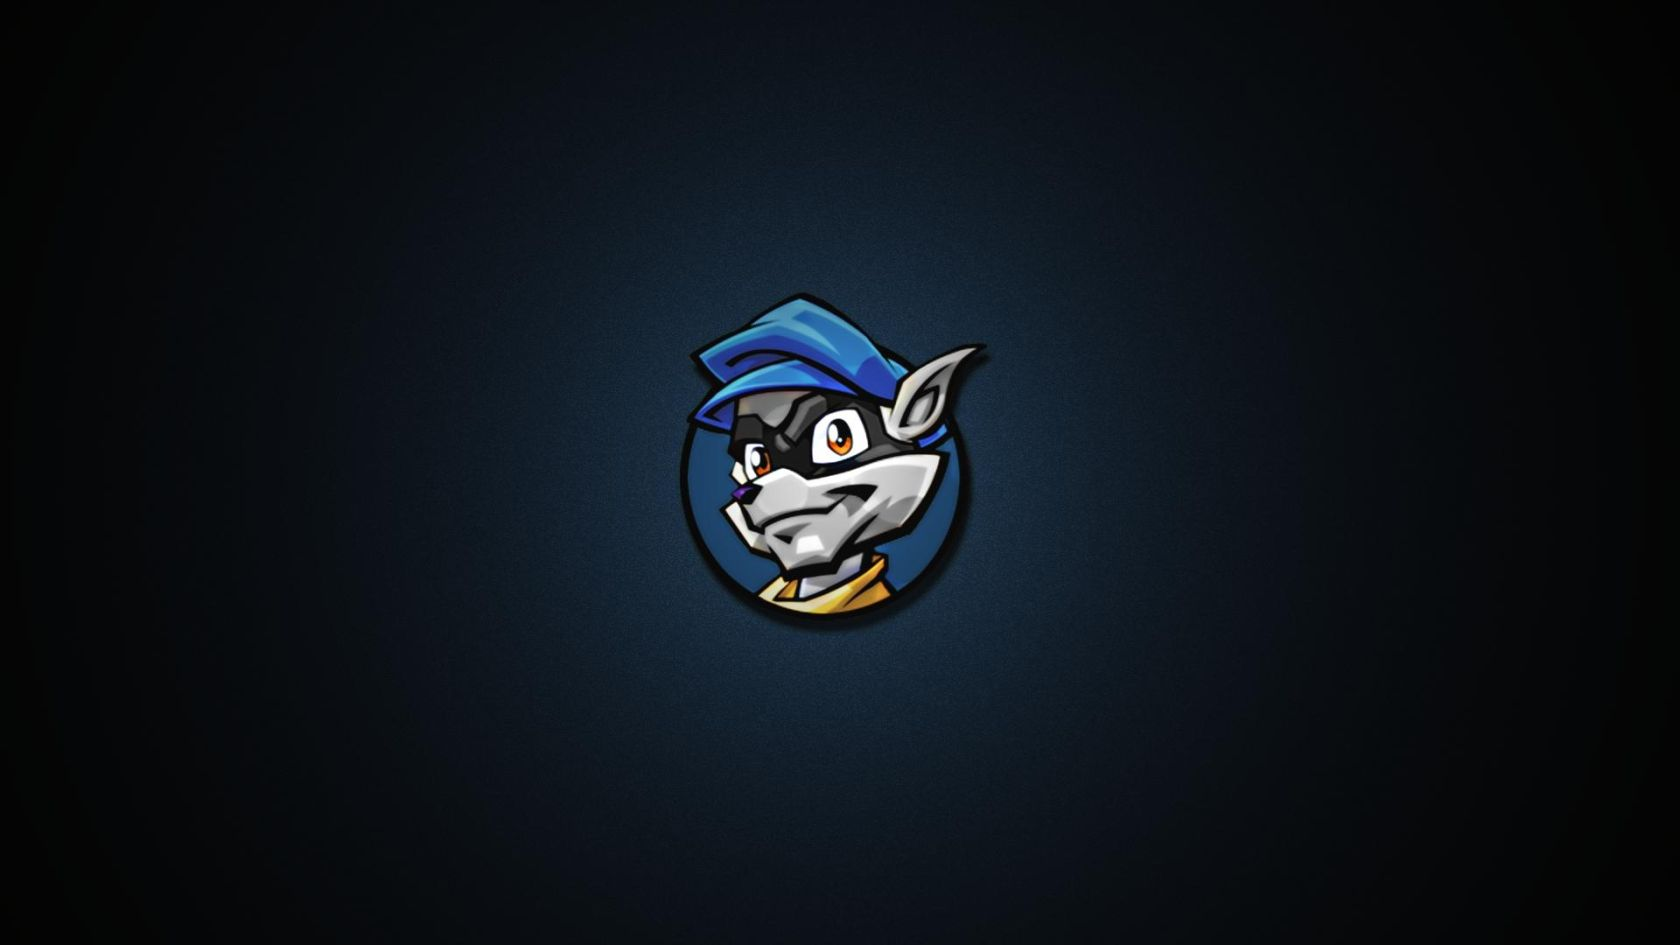 Sly Cooper Wallpaper [1920x1080] Wallpapers Wallpapers Pictures 1680x945